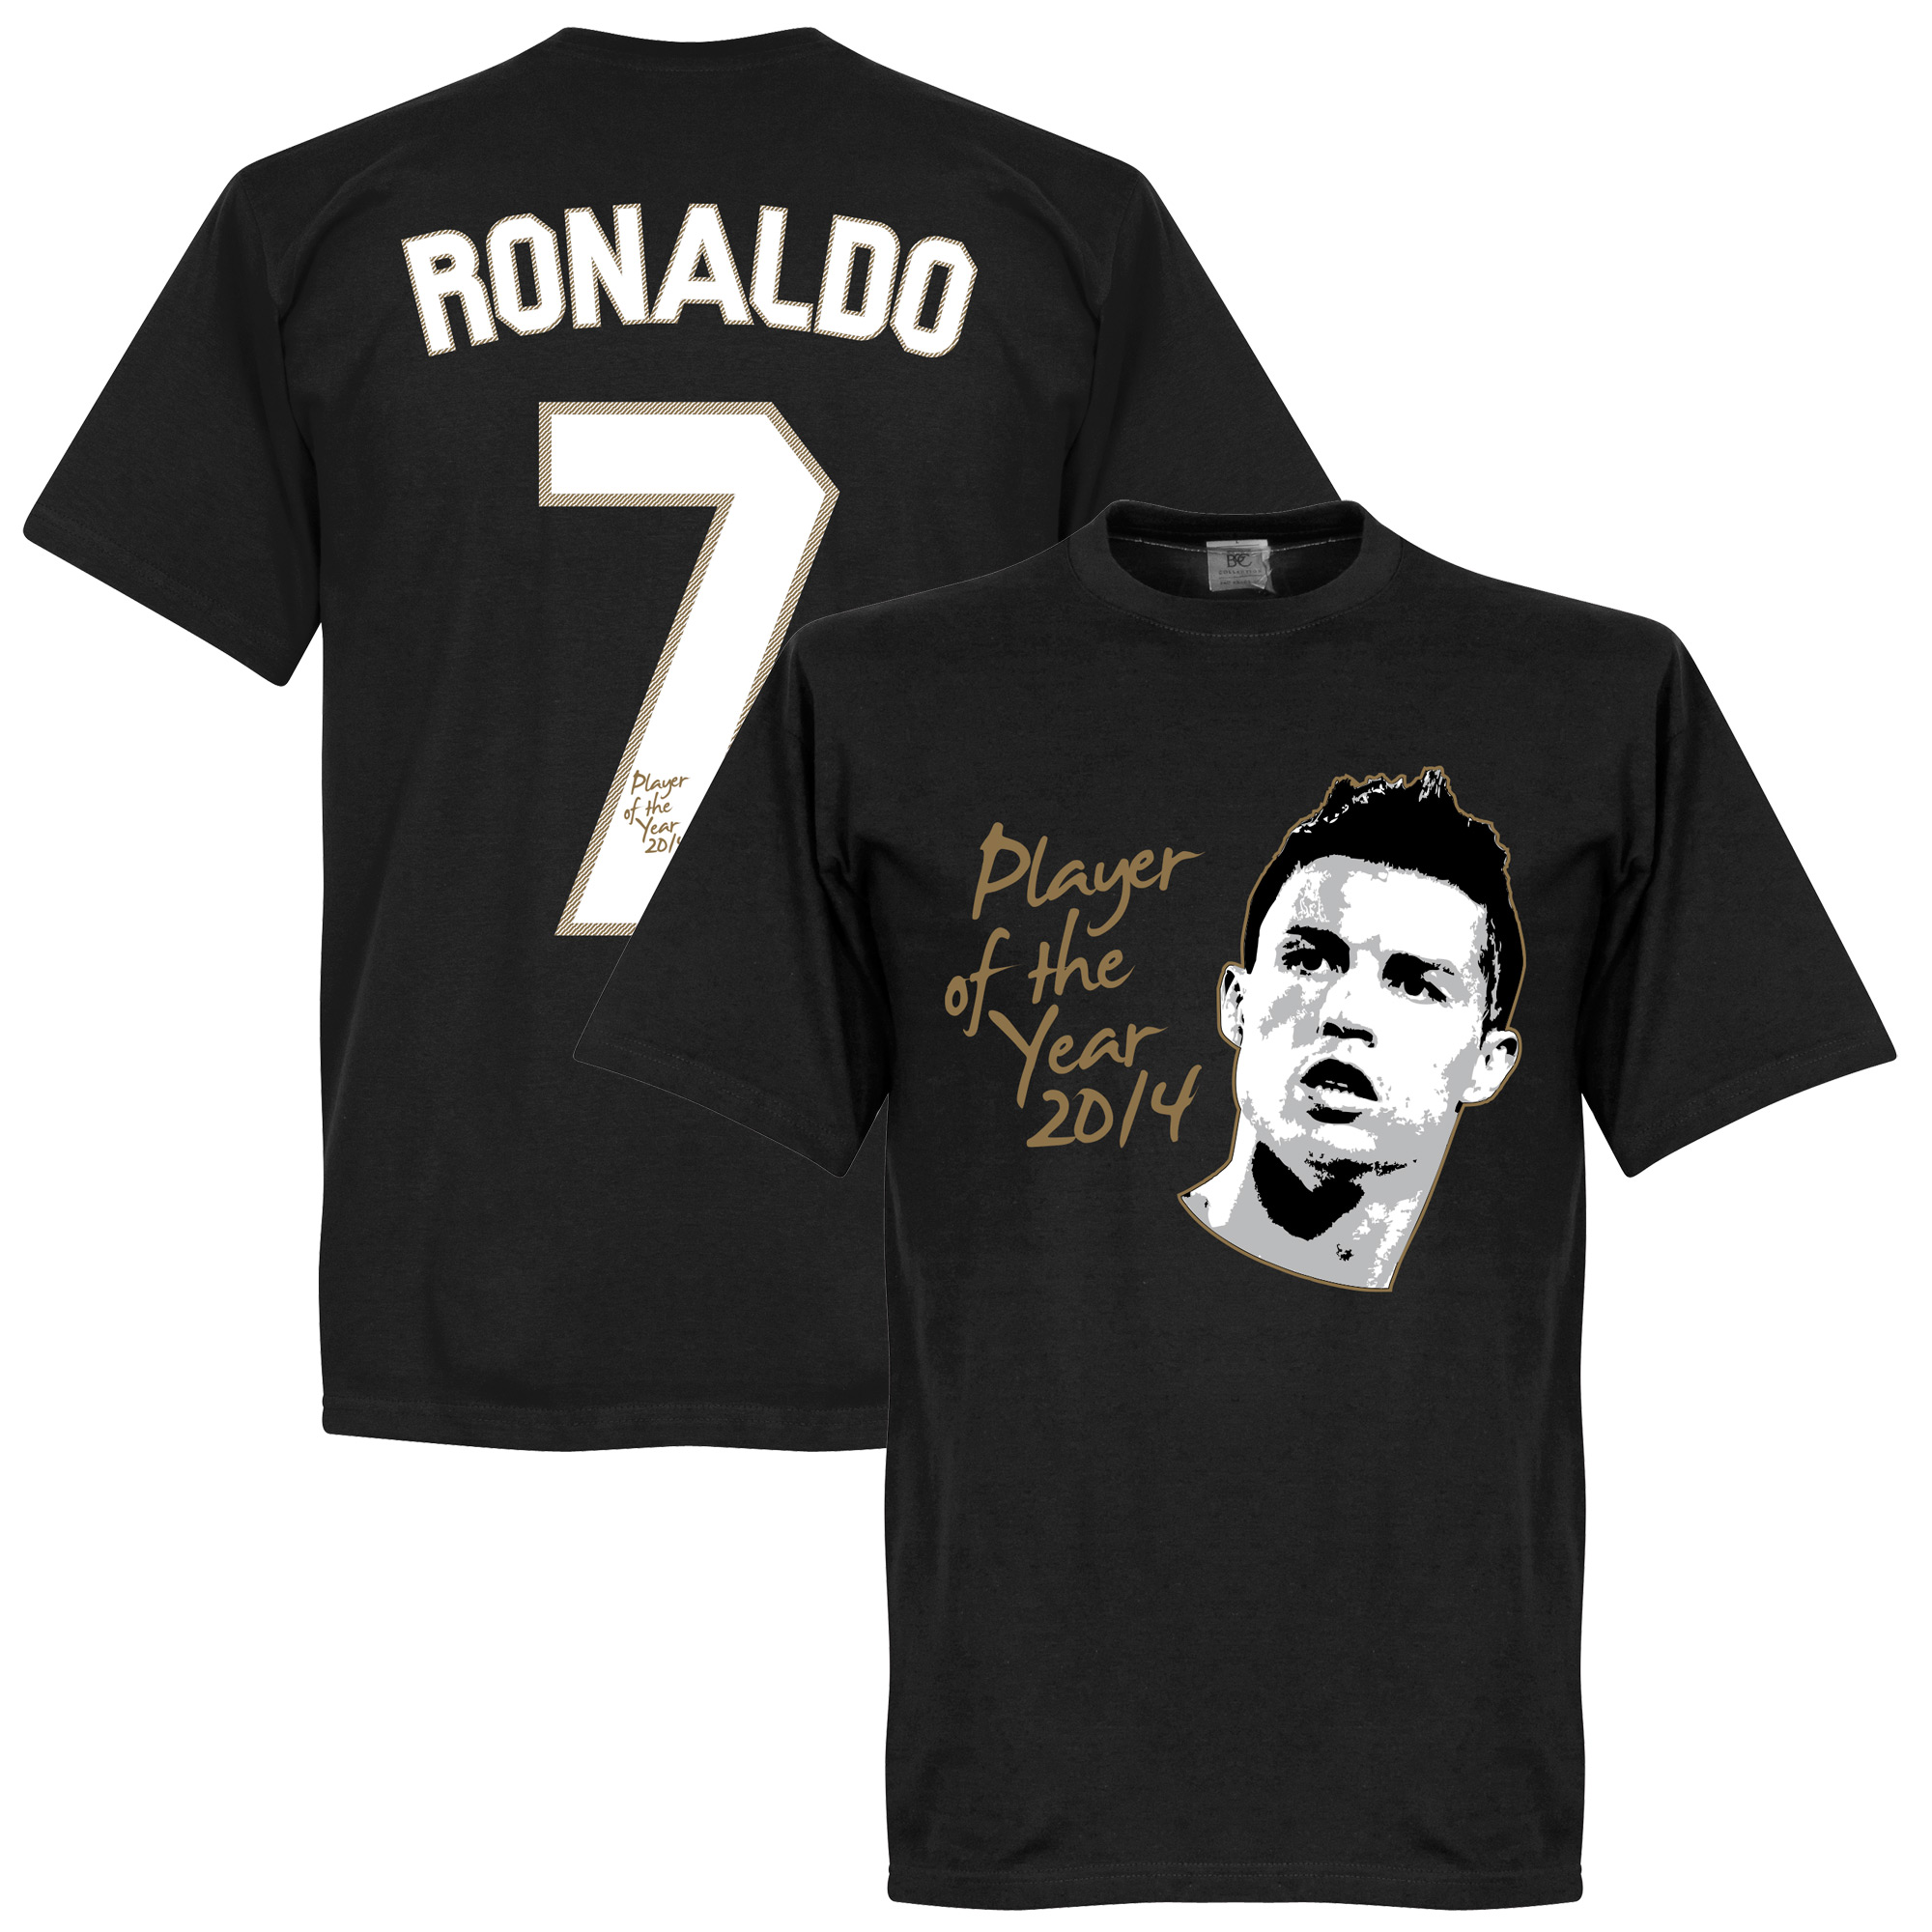 Ronaldo Player of the Year Tee - Black - XXXL